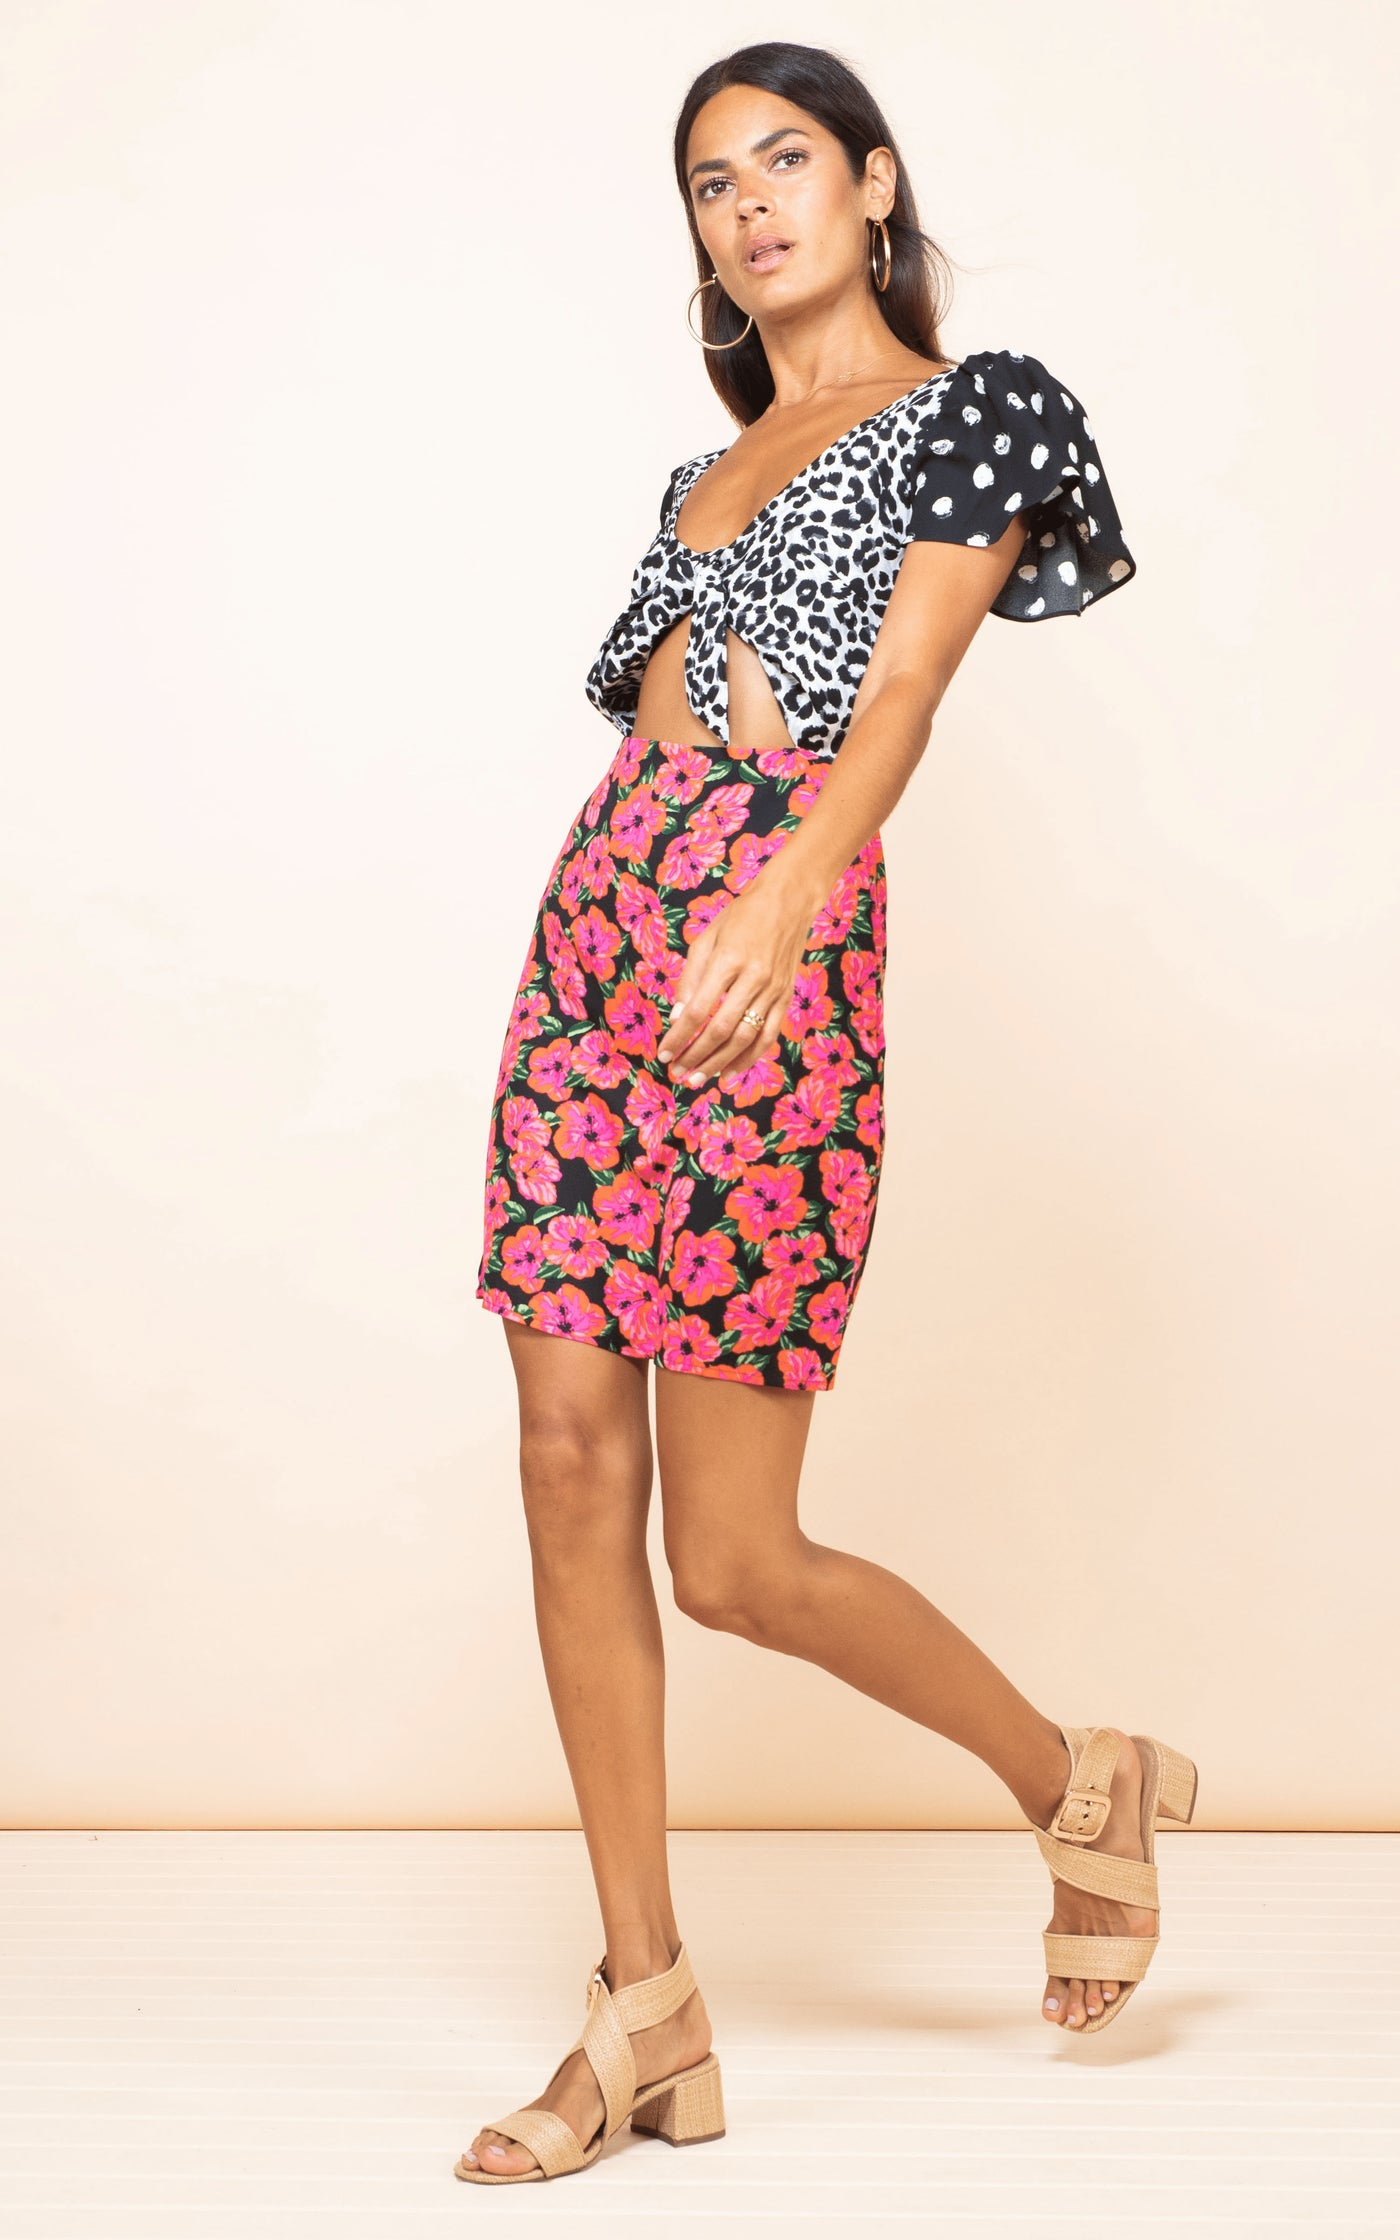 Model walks forwards wearing Dancing Leopard Mambo Mini Dress in Hibiscus Mix Print with sandals